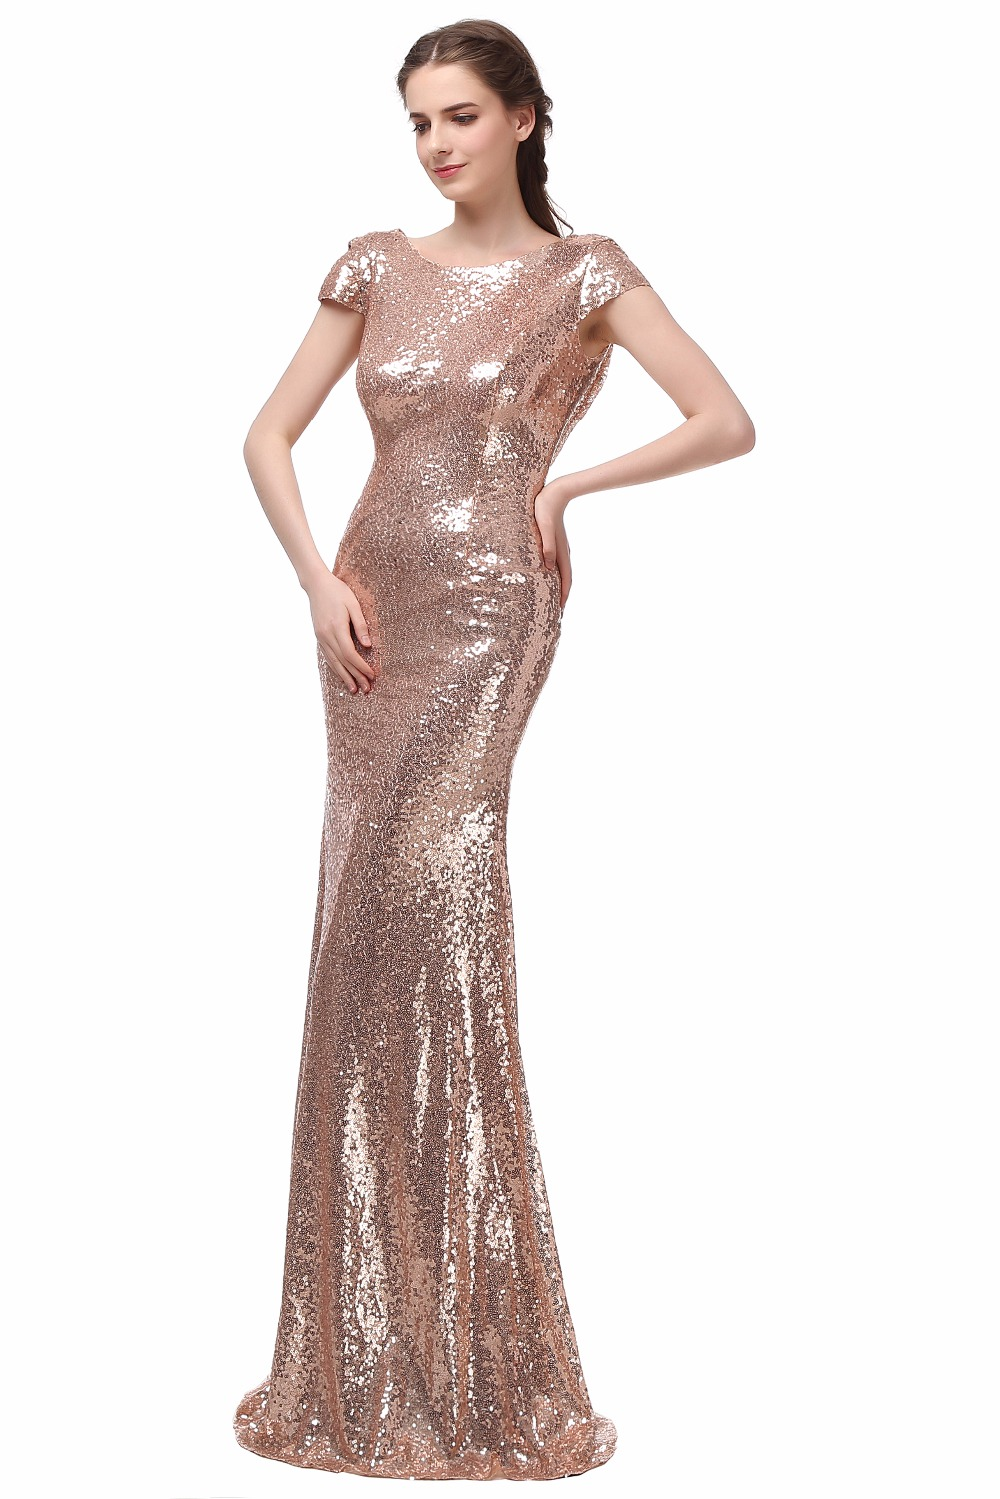 Champagne Long vestido longo Sequined Short Sleeve Floor Length Bridesmaid Dress 2016 Prom Dress Wedding Party Dress 11